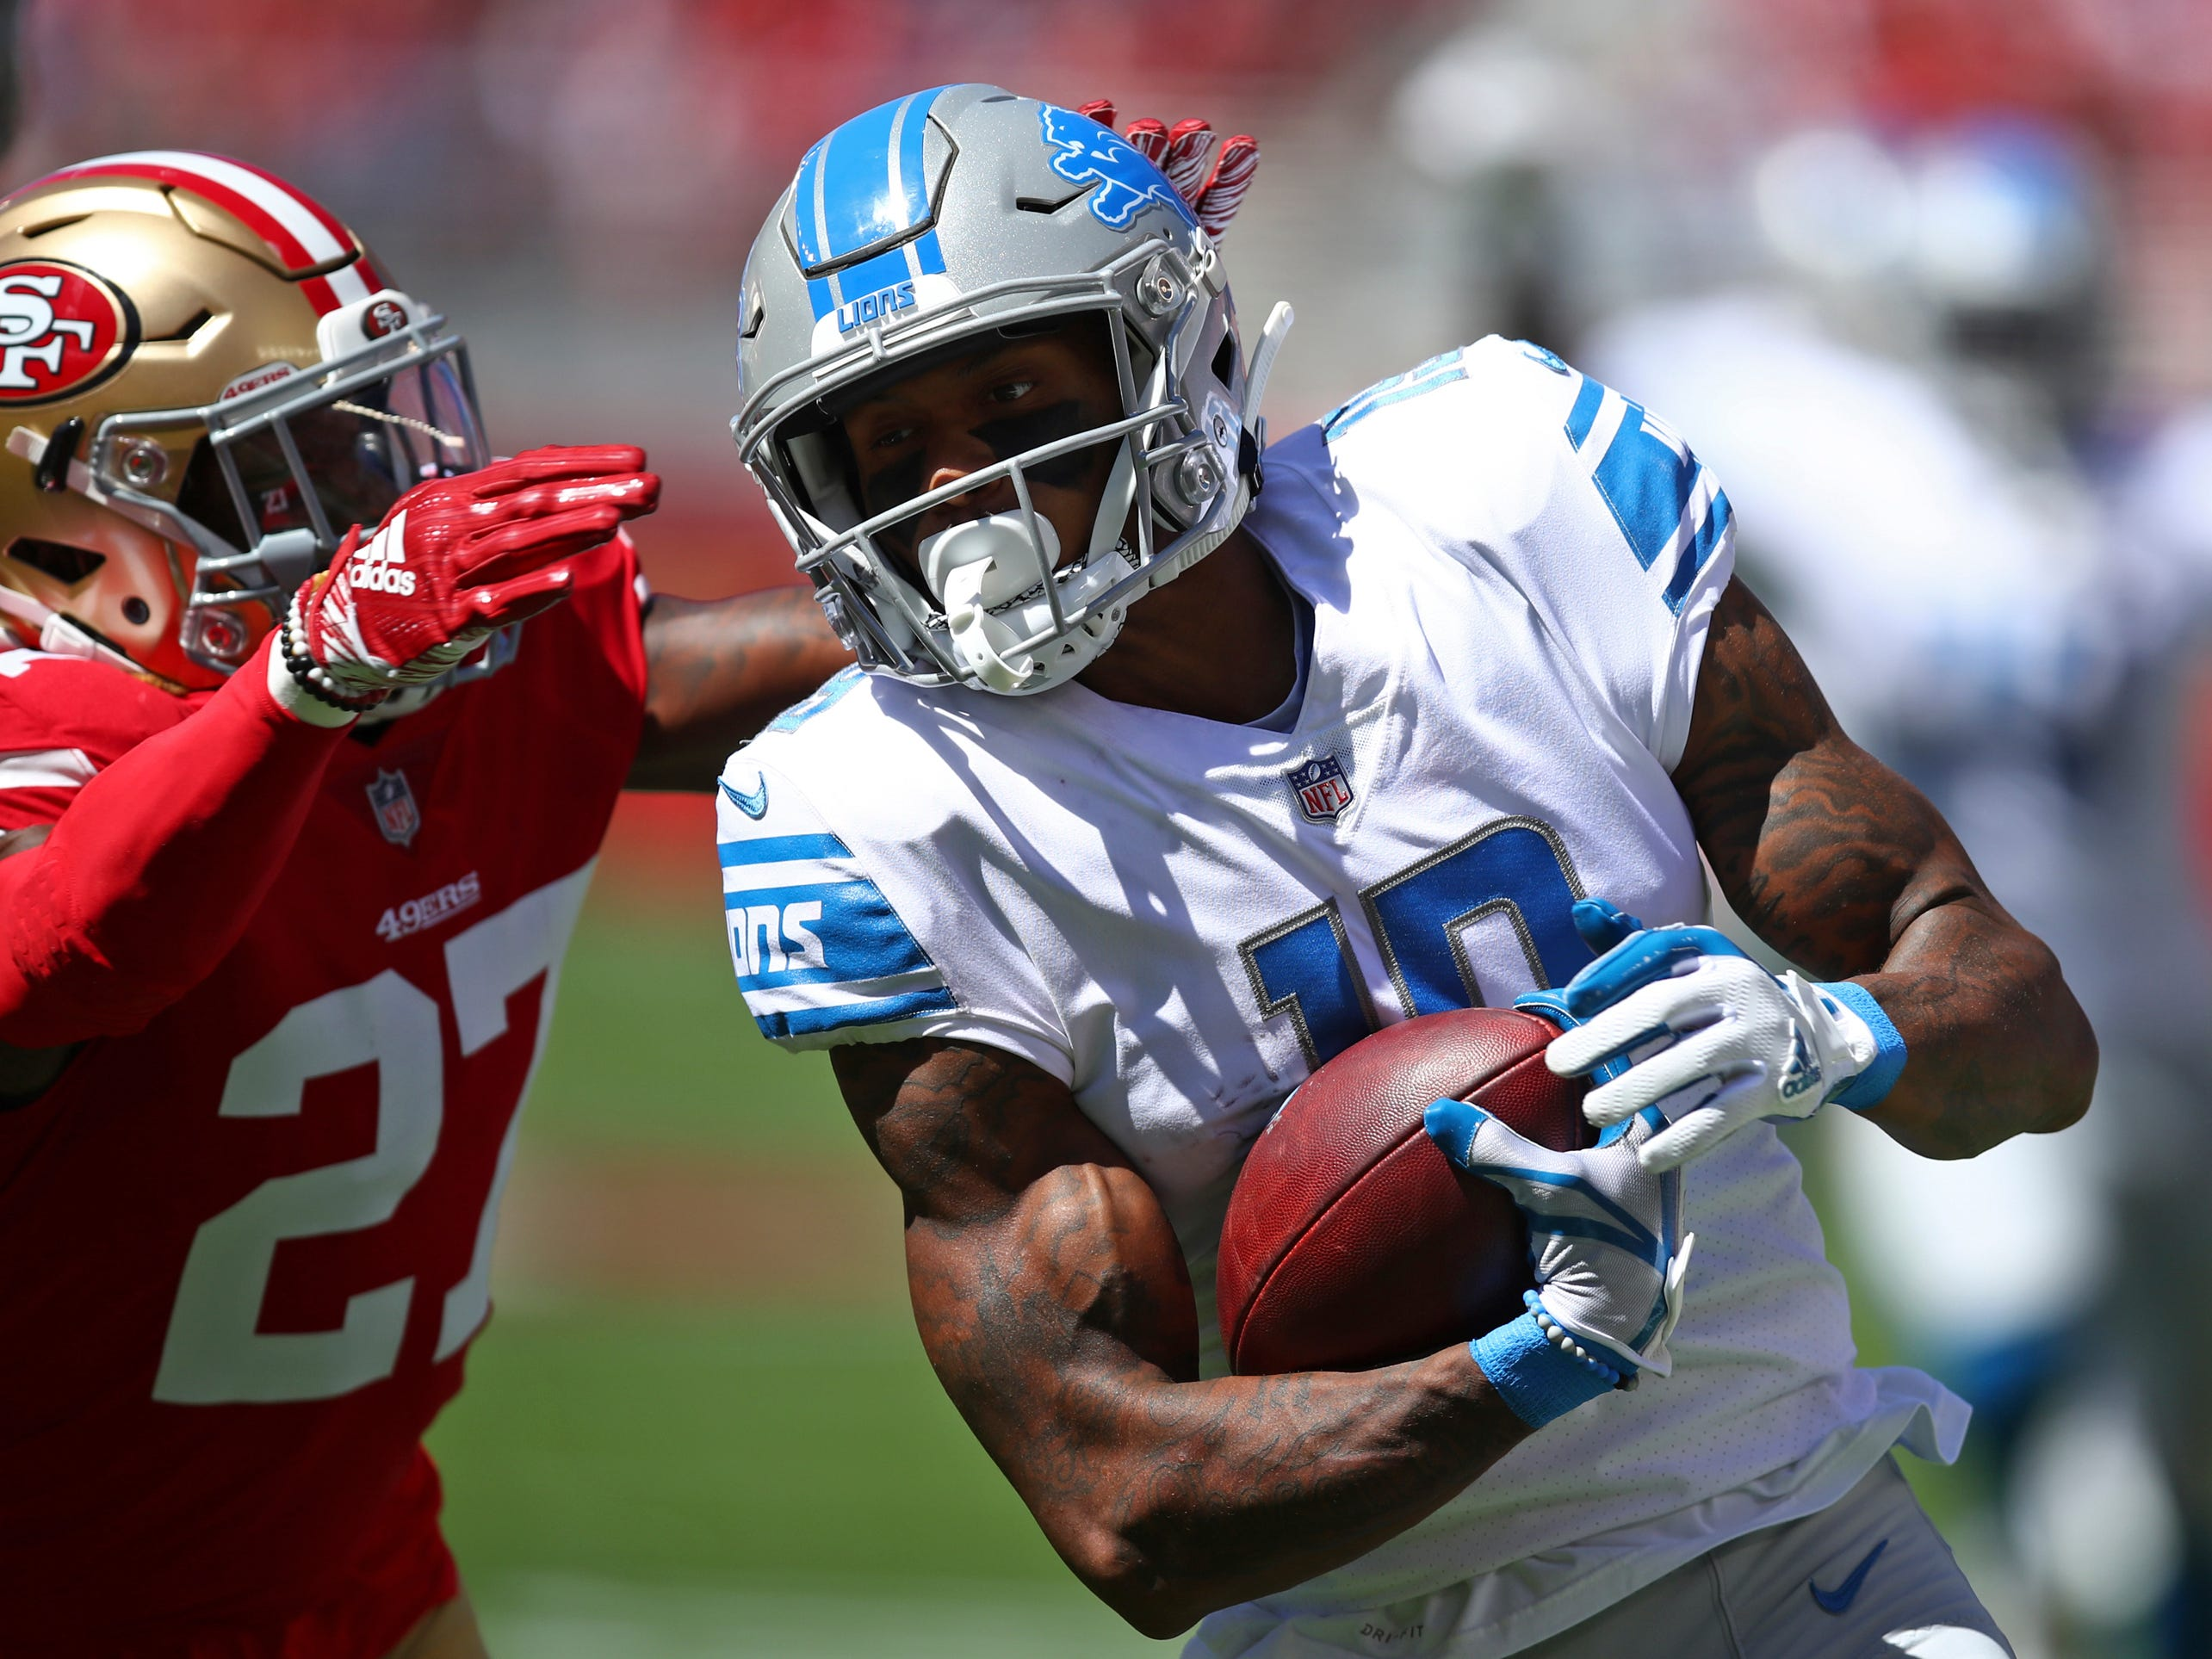 Detroit Lions wide receiver Kenny Golladay runs with the ball as San Francisco 49ers defensive back Adrian Colbert (27) looks on during the first half.